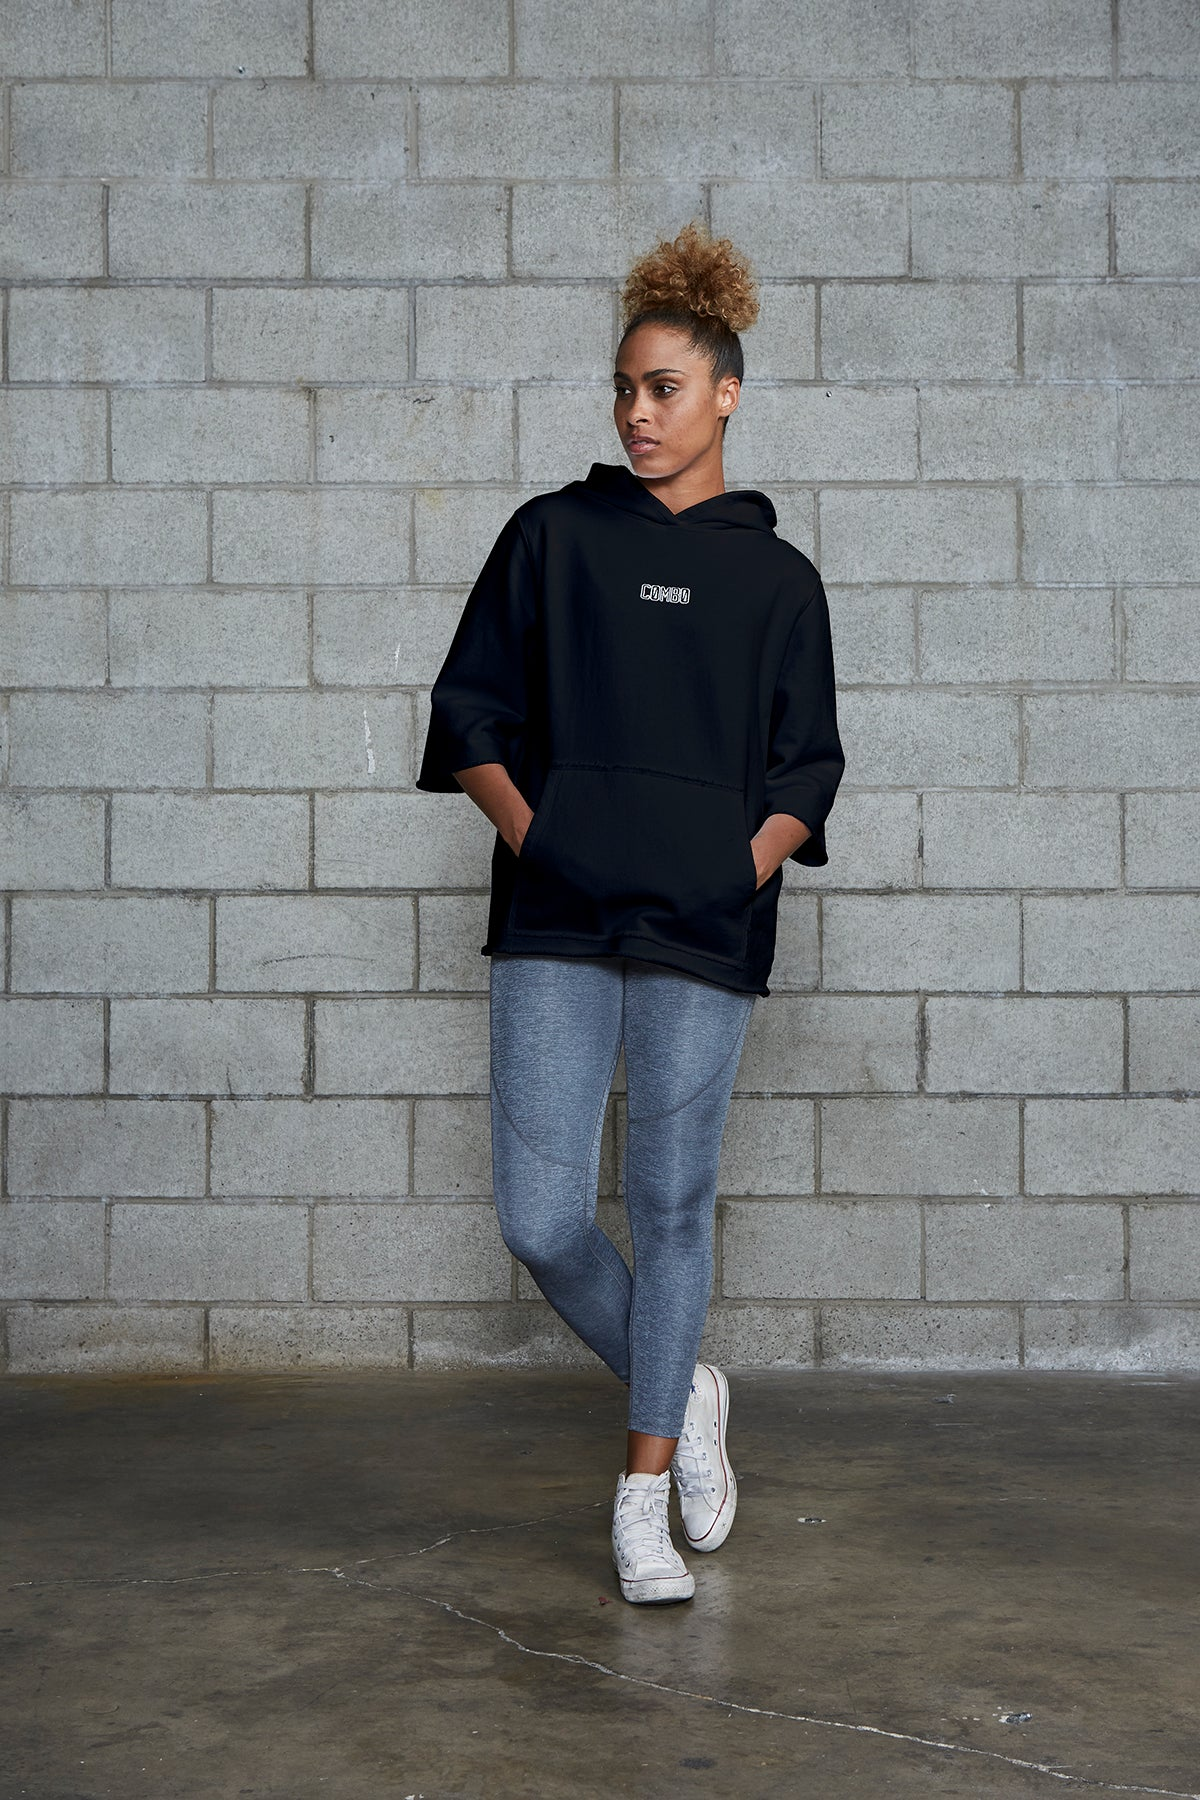 Super Maxx Hooded Sweatshirt